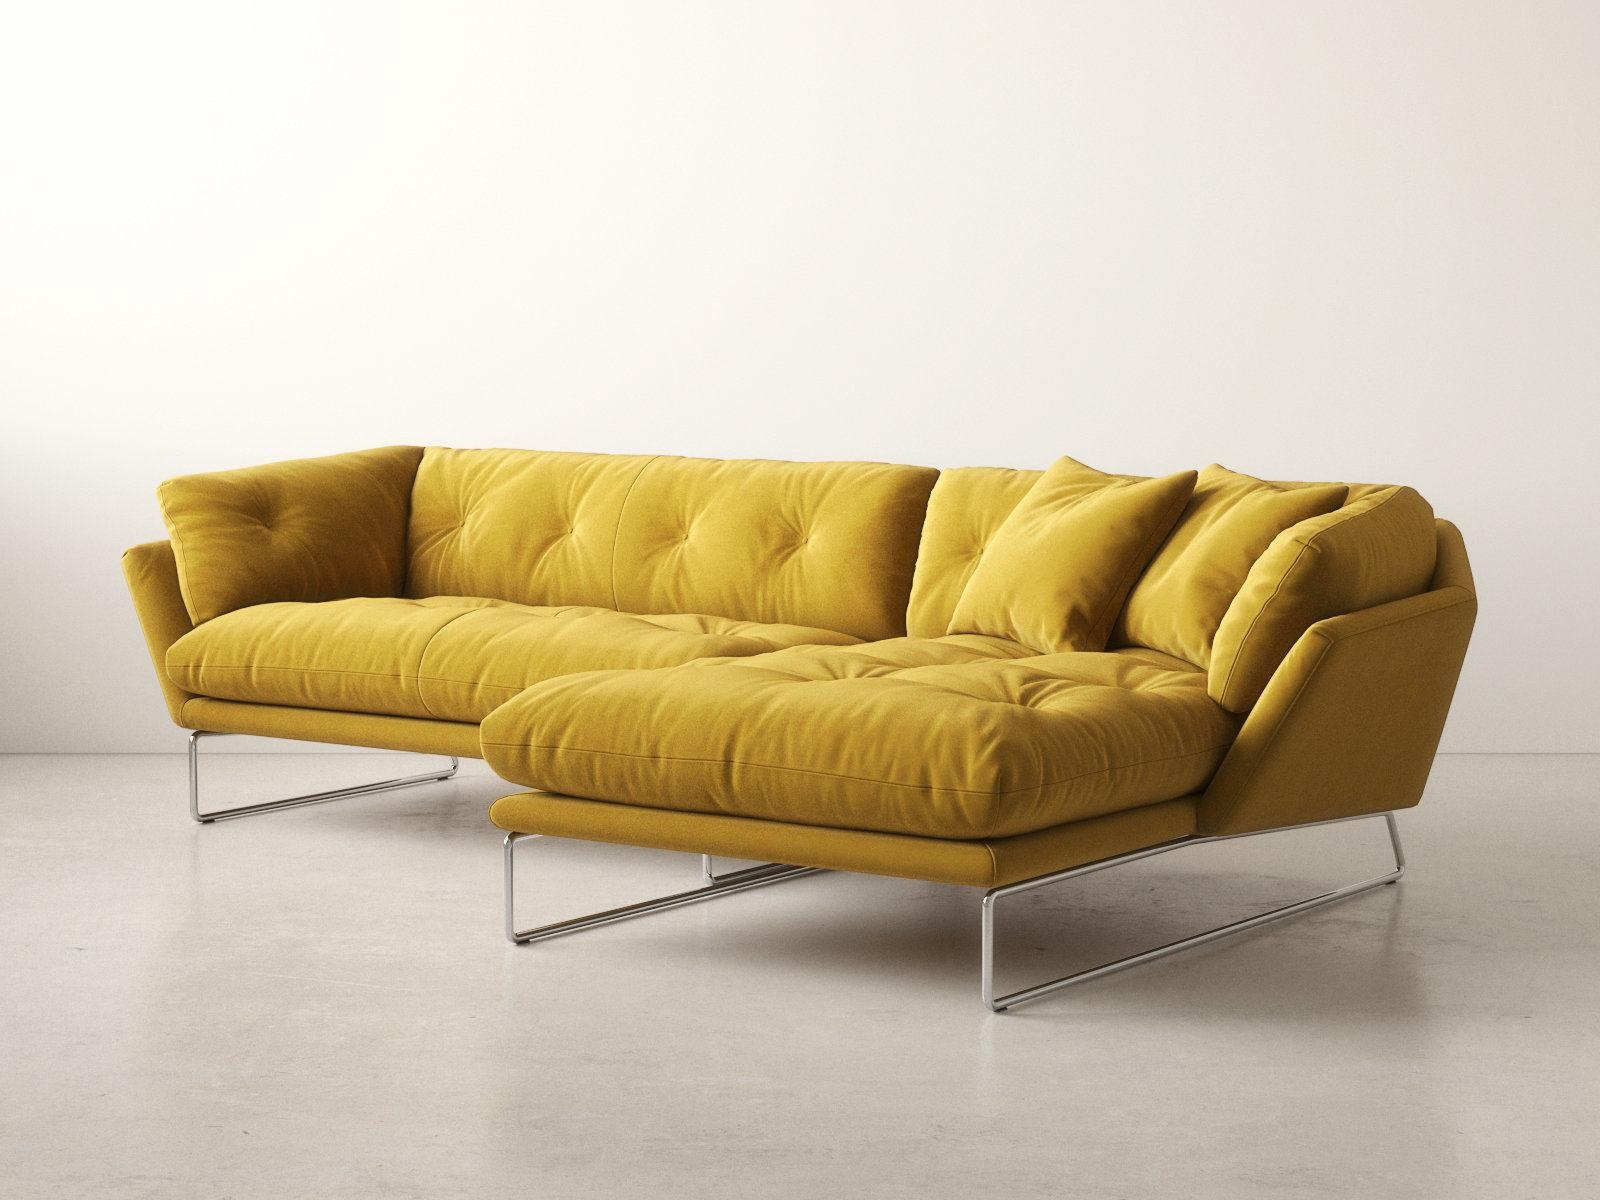 sofa seat height 60cm cama nido catalogo low sofas new blog wallpapers